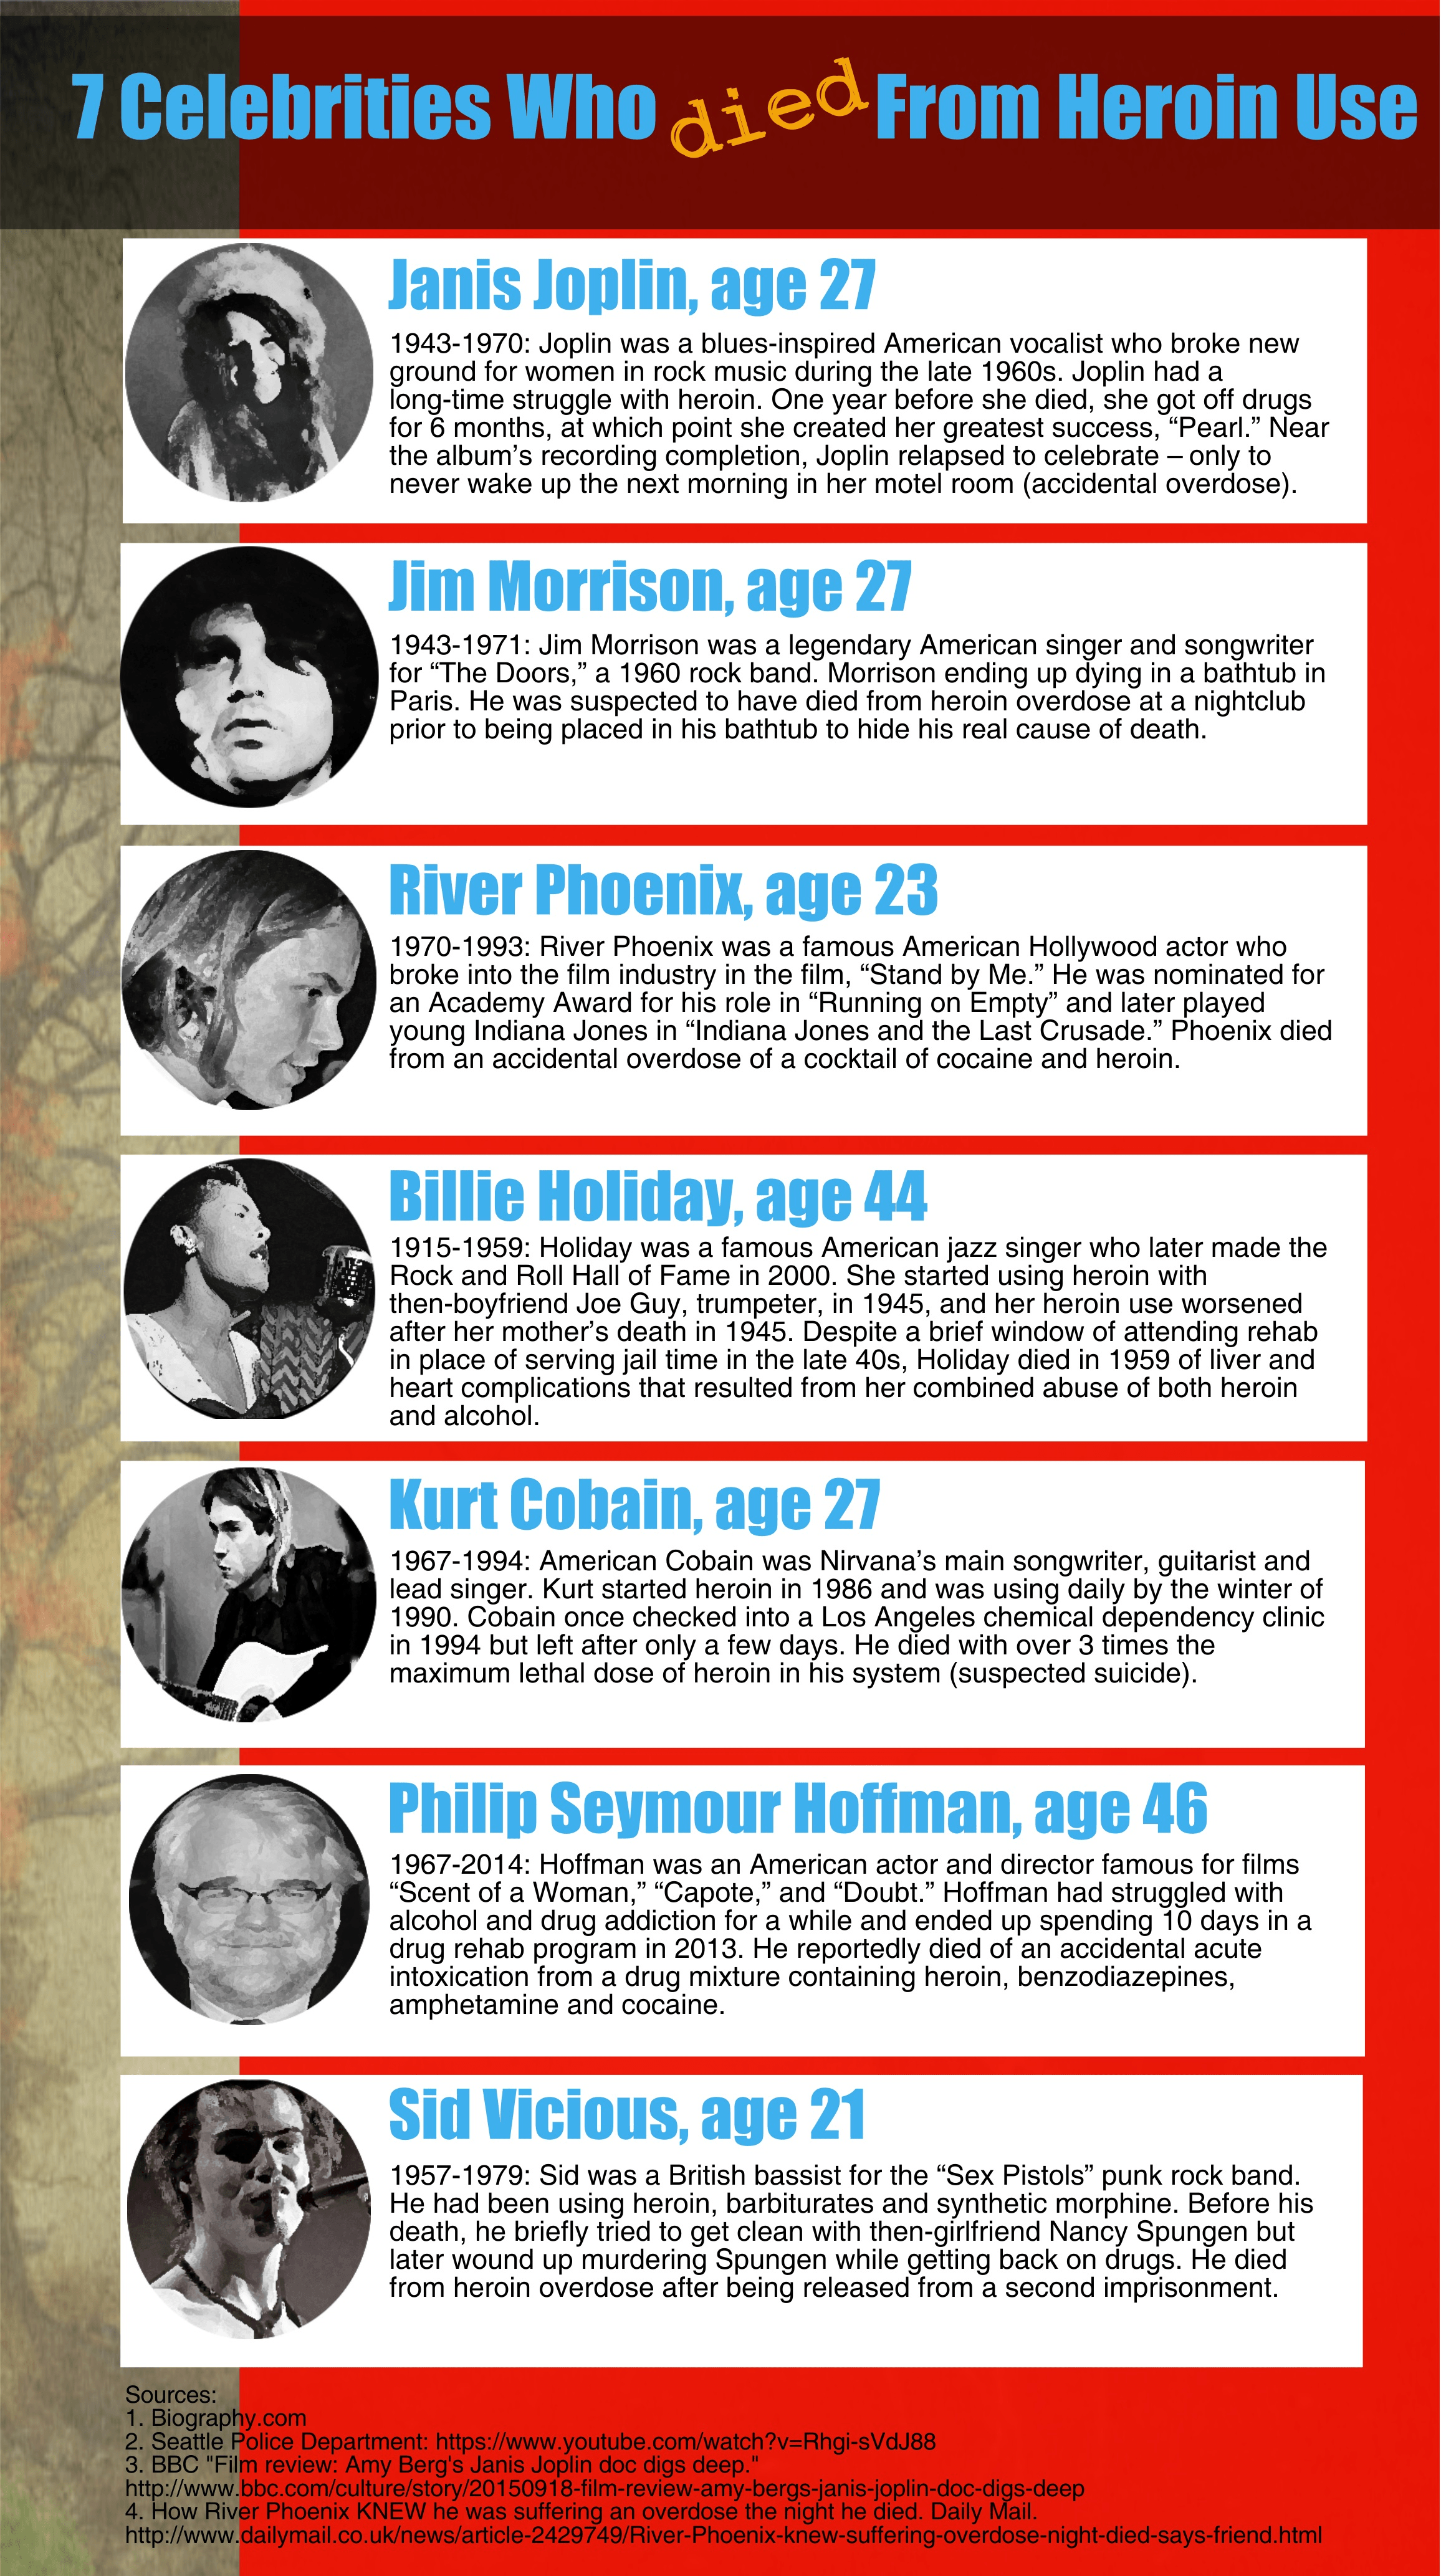 celebrities who died from heroin